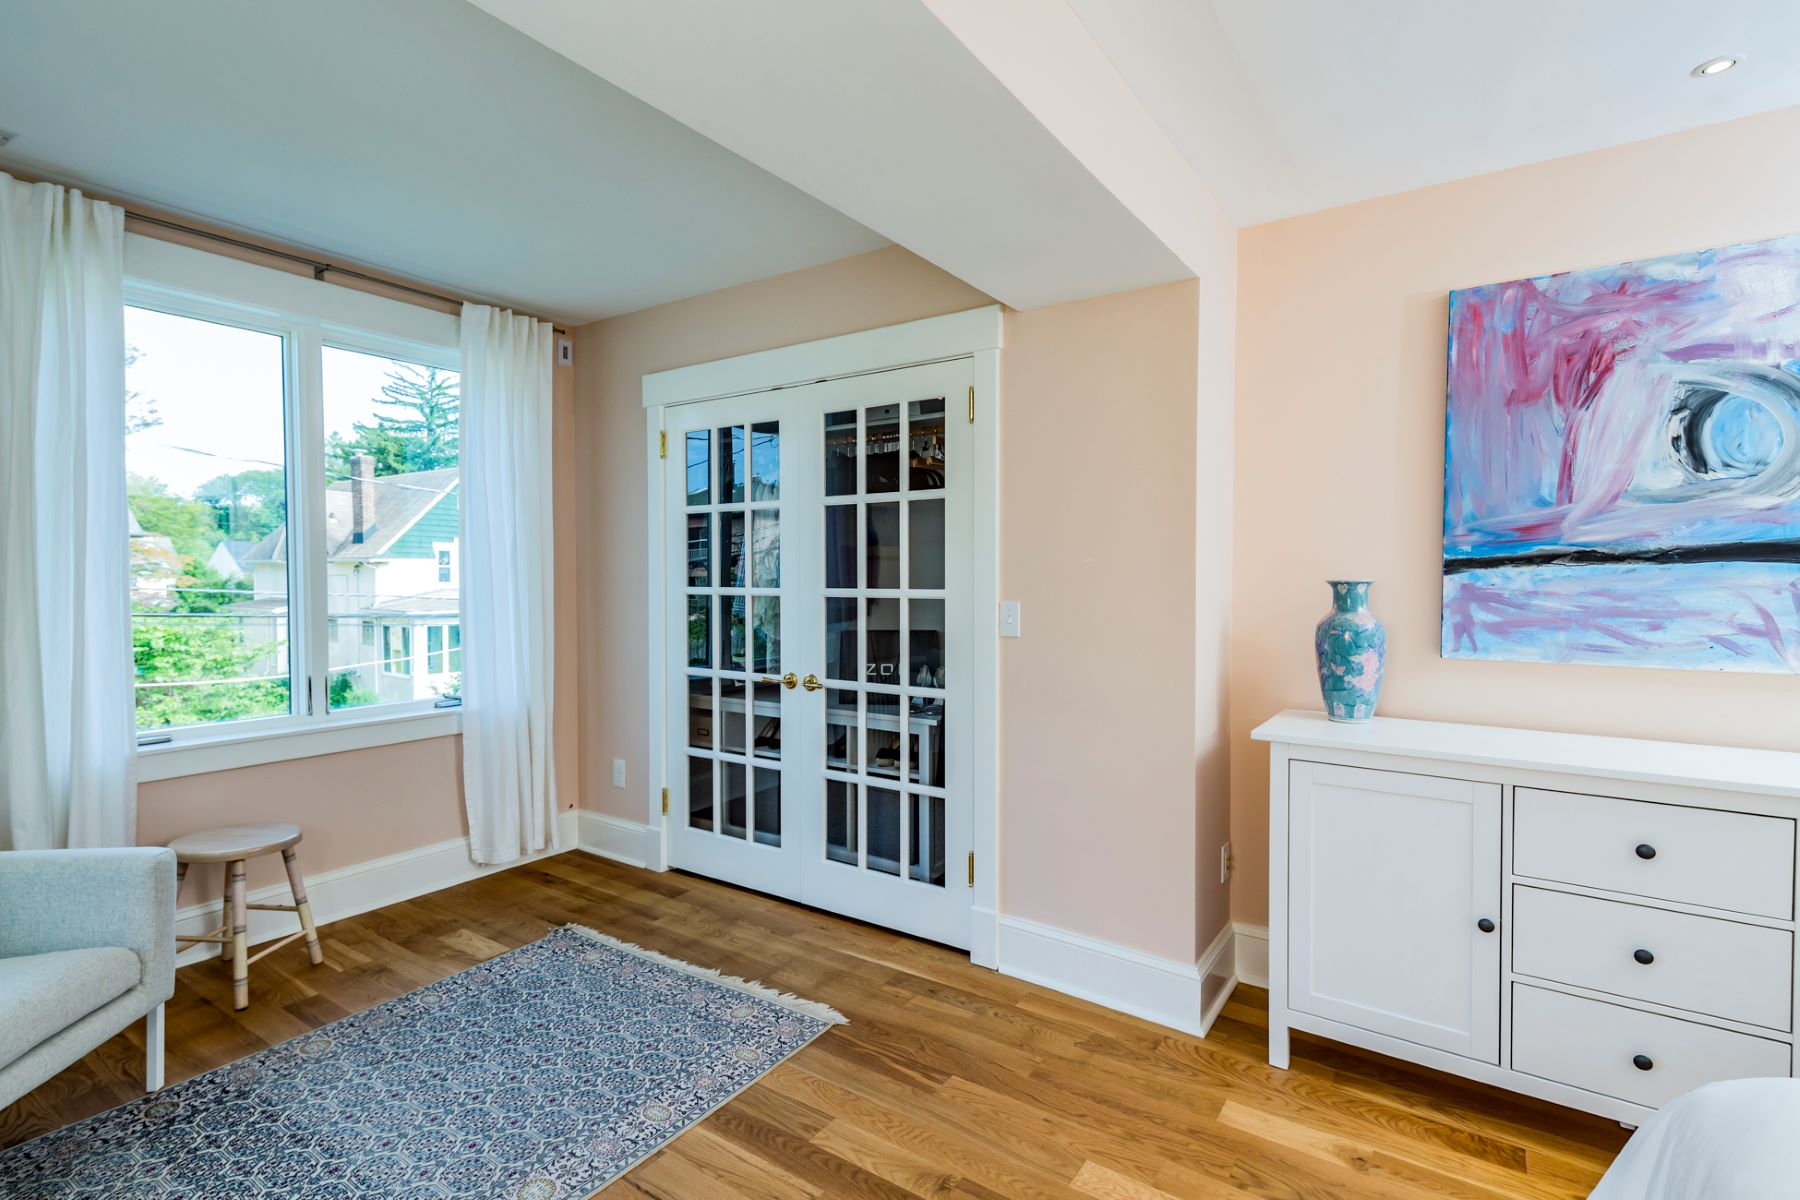 Additional photo for property listing at Undeniably Visionary! 23 Markham Road, Princeton, Nueva Jersey 08540 Estados Unidos